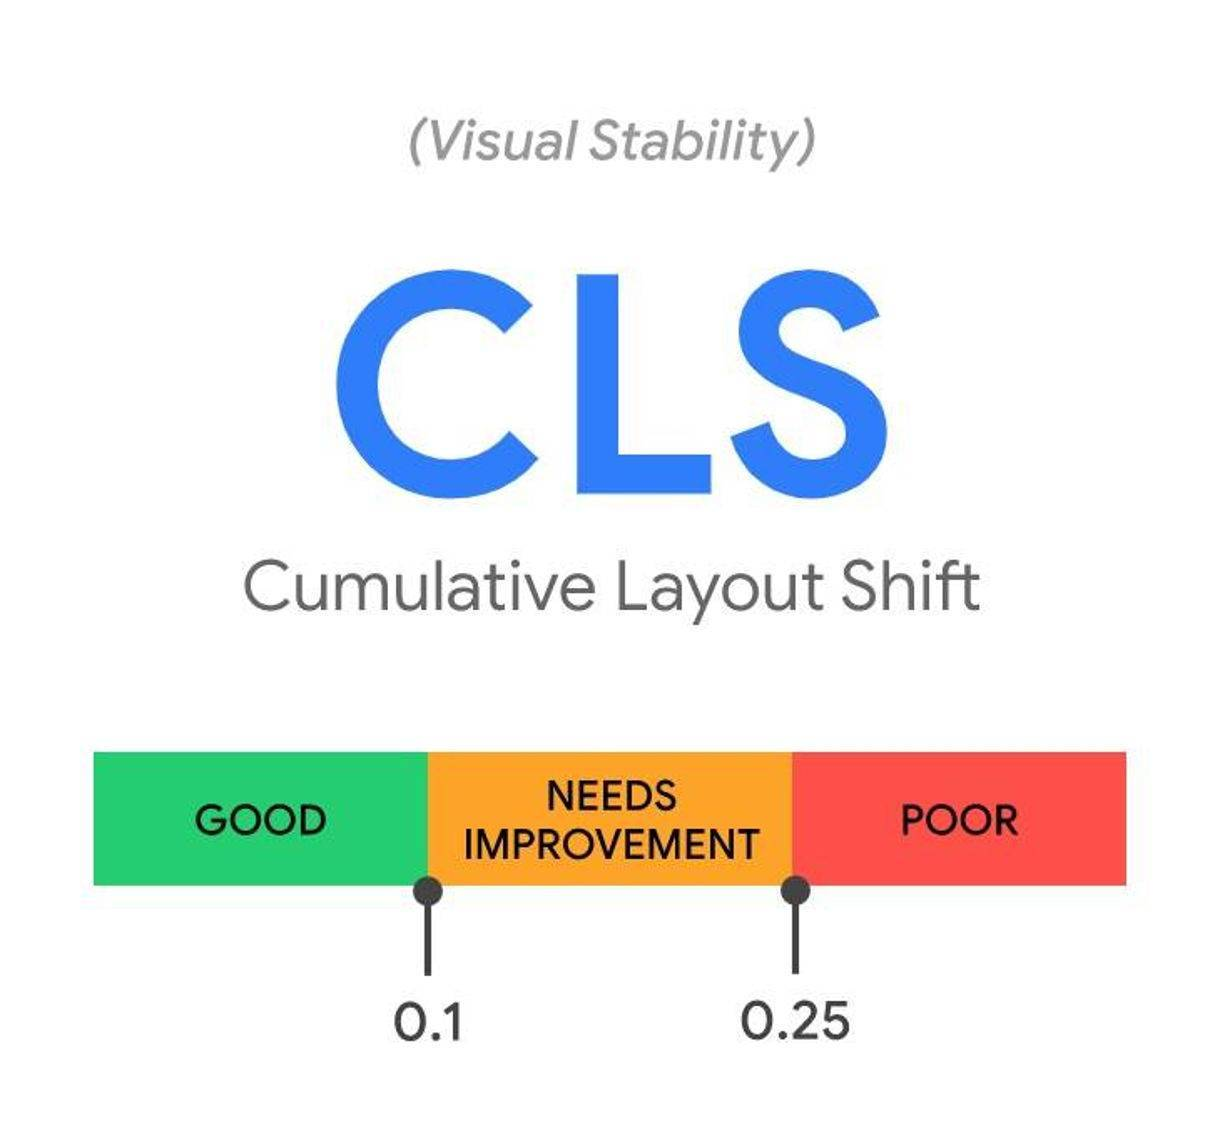 CLS Cumulative Layout Shift is a Core Web Vital that measures the visual stability of web pages